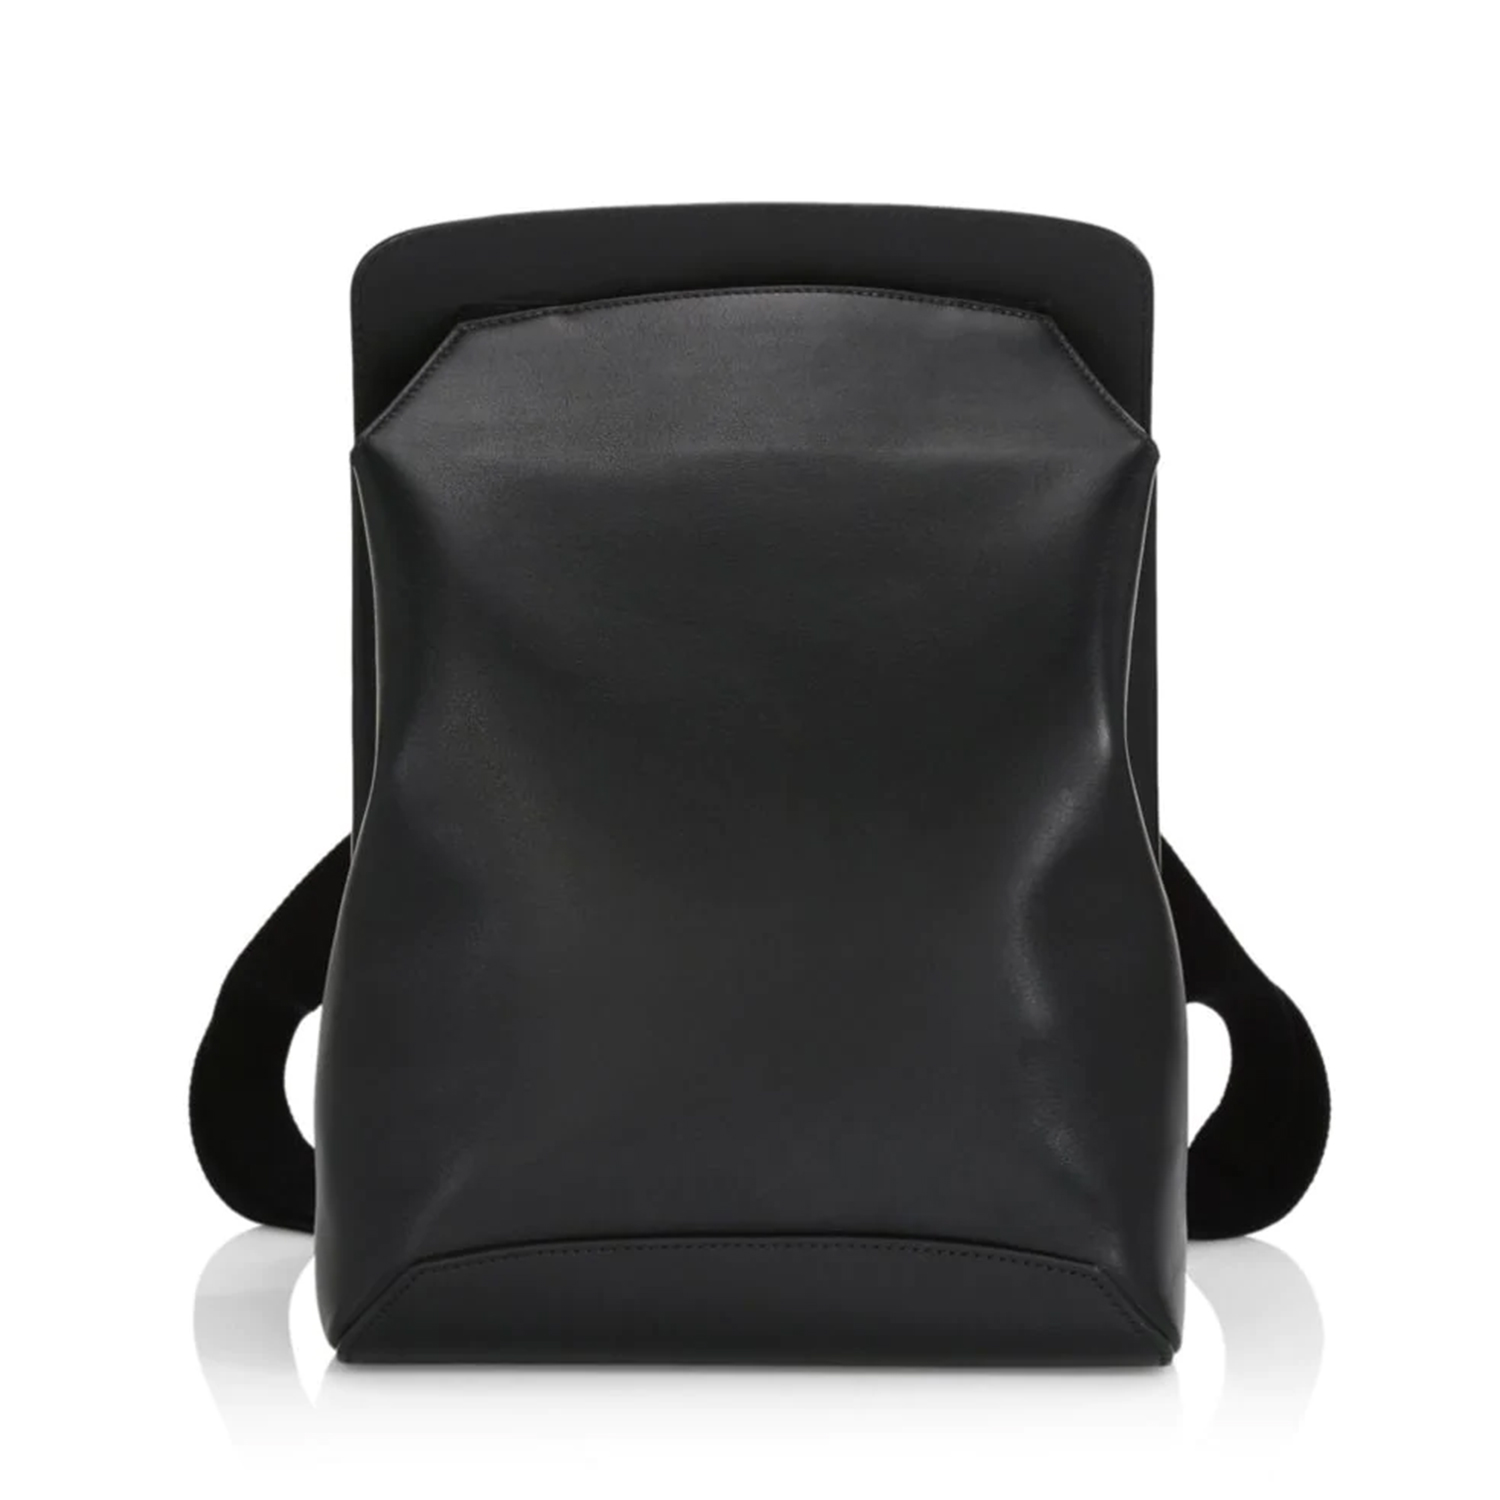 The Row - Moulded Leather Backpack